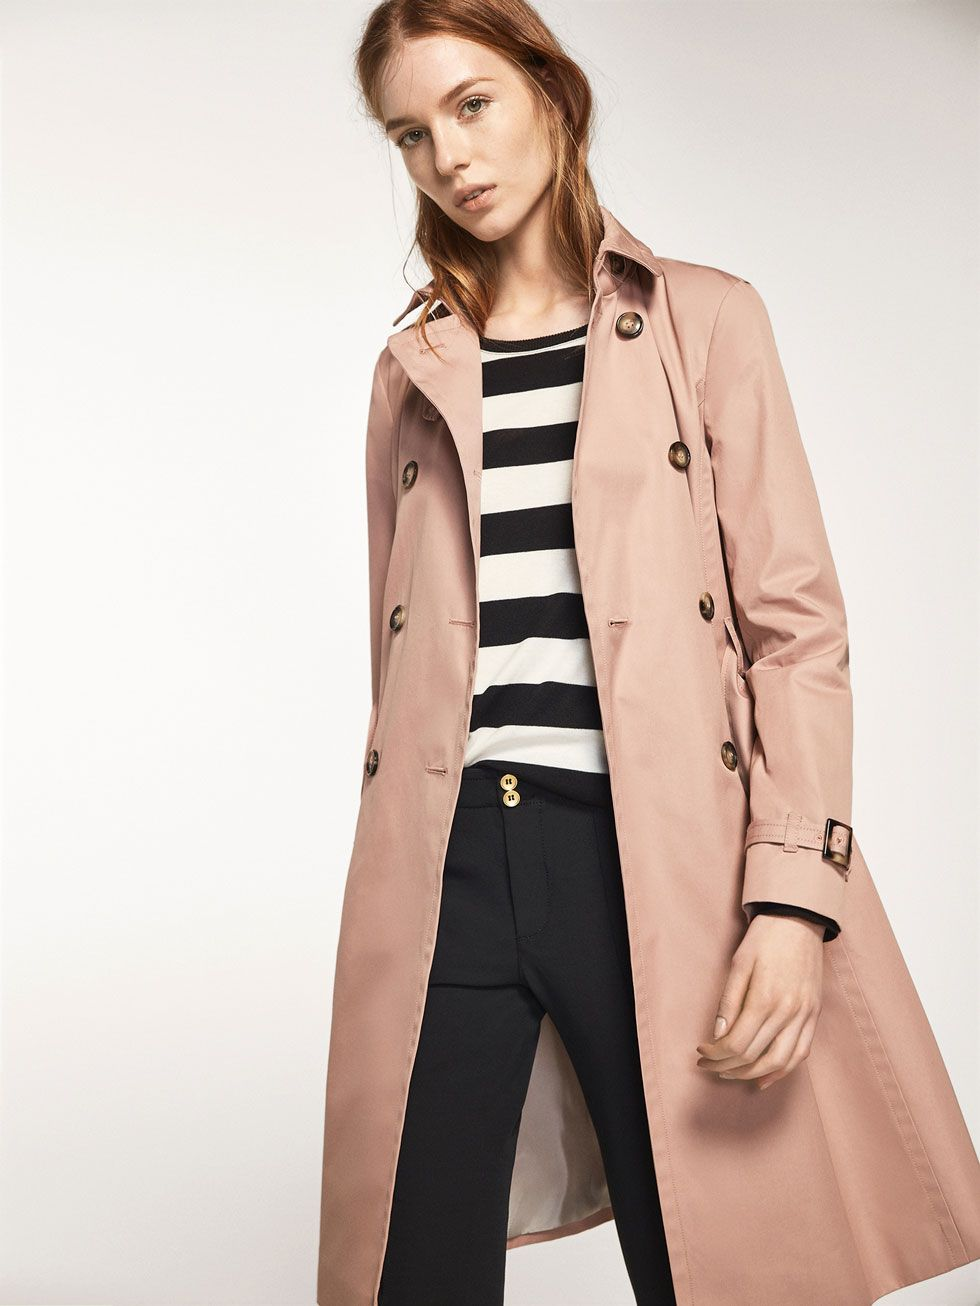 Autumn Winter 2016 Women S Pink Trench Coat At Massimo Dutti For 245 Effortless Elegance Pink Trench Coat Coat Trench Coat